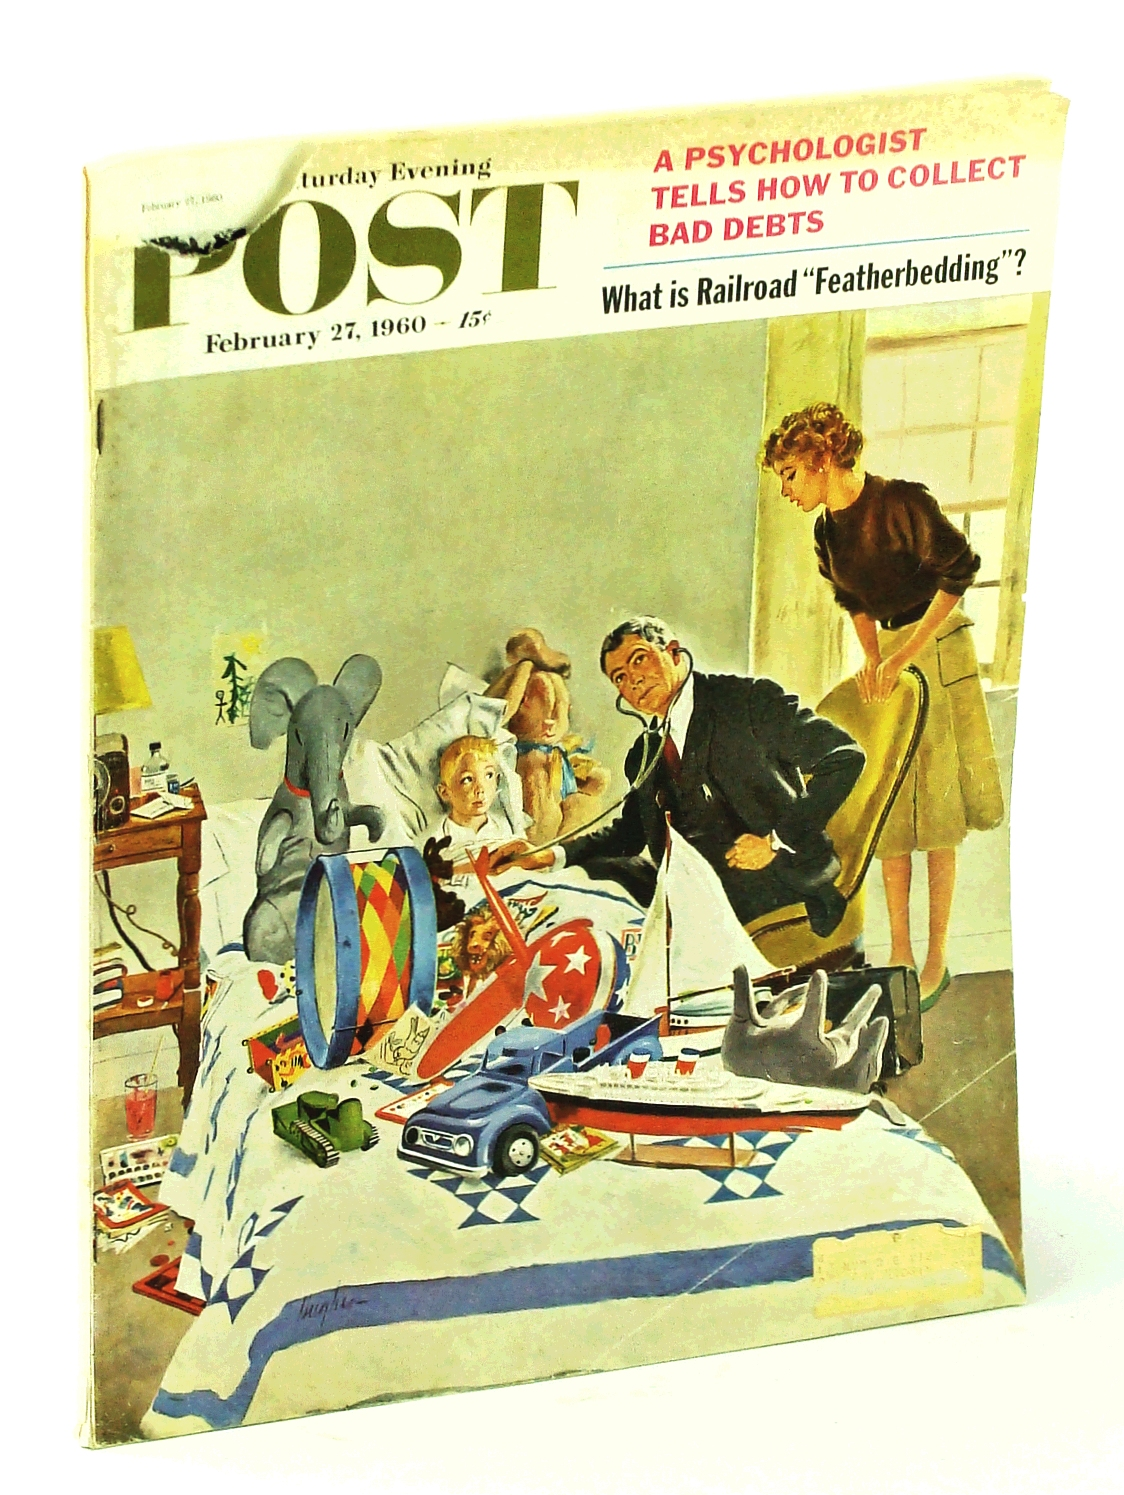 Image for The Saturday Evening Post, February [Feb.] 27, 1960, Volume 232, Number 35 - Norman Rockwell's Adventures as an Illustrator (Part 3) / Palm Springs / X-15 Test Pilot